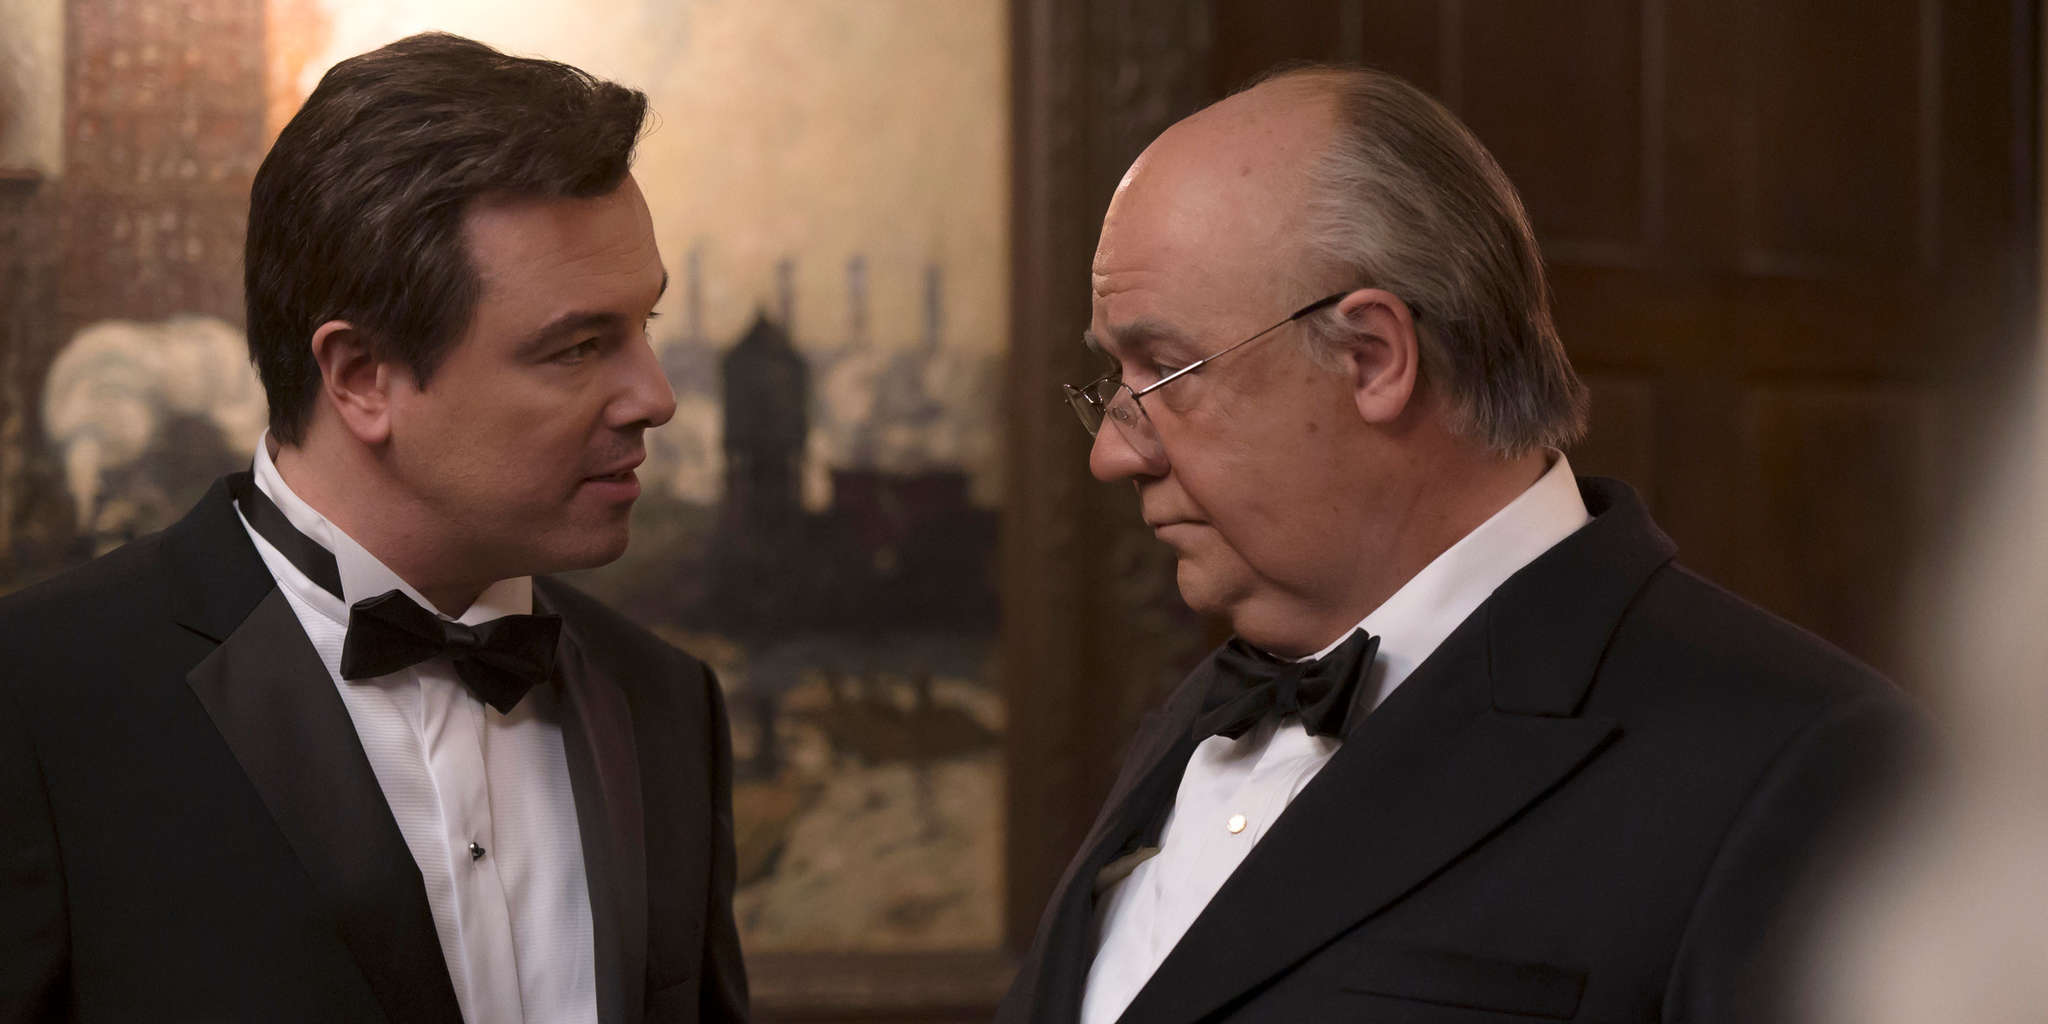 Russell Crowe and Seth MacFarlane in The Loudest Voice (2019)